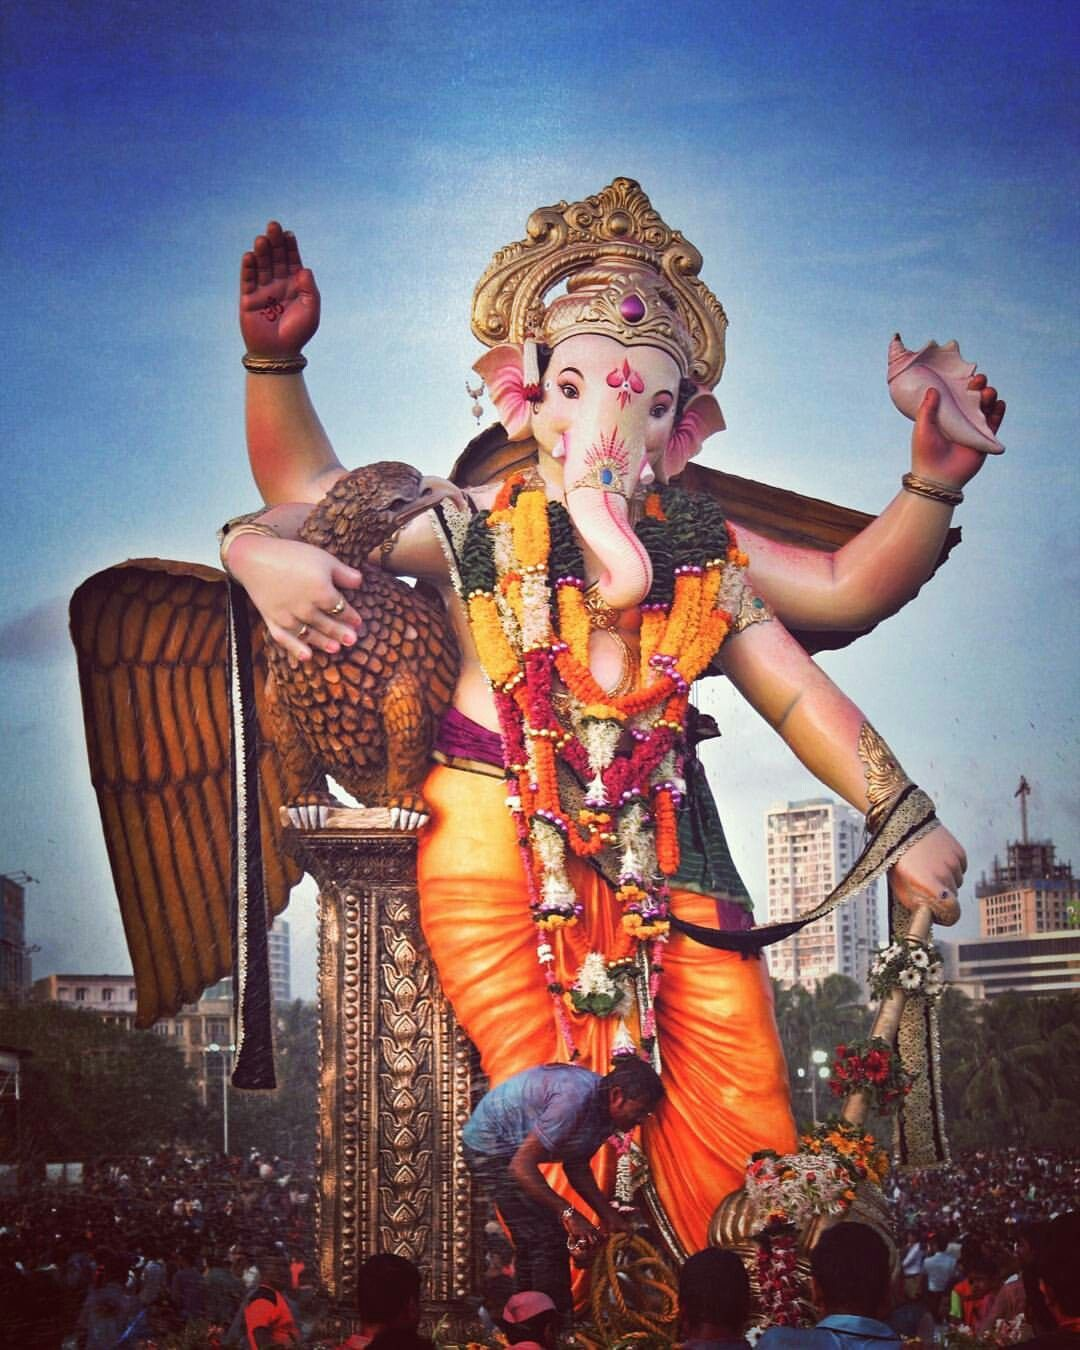 Pin By Mansi Thakur On Marri Bhai Background Images For Editing Background Images Hd Ganesha Pictures